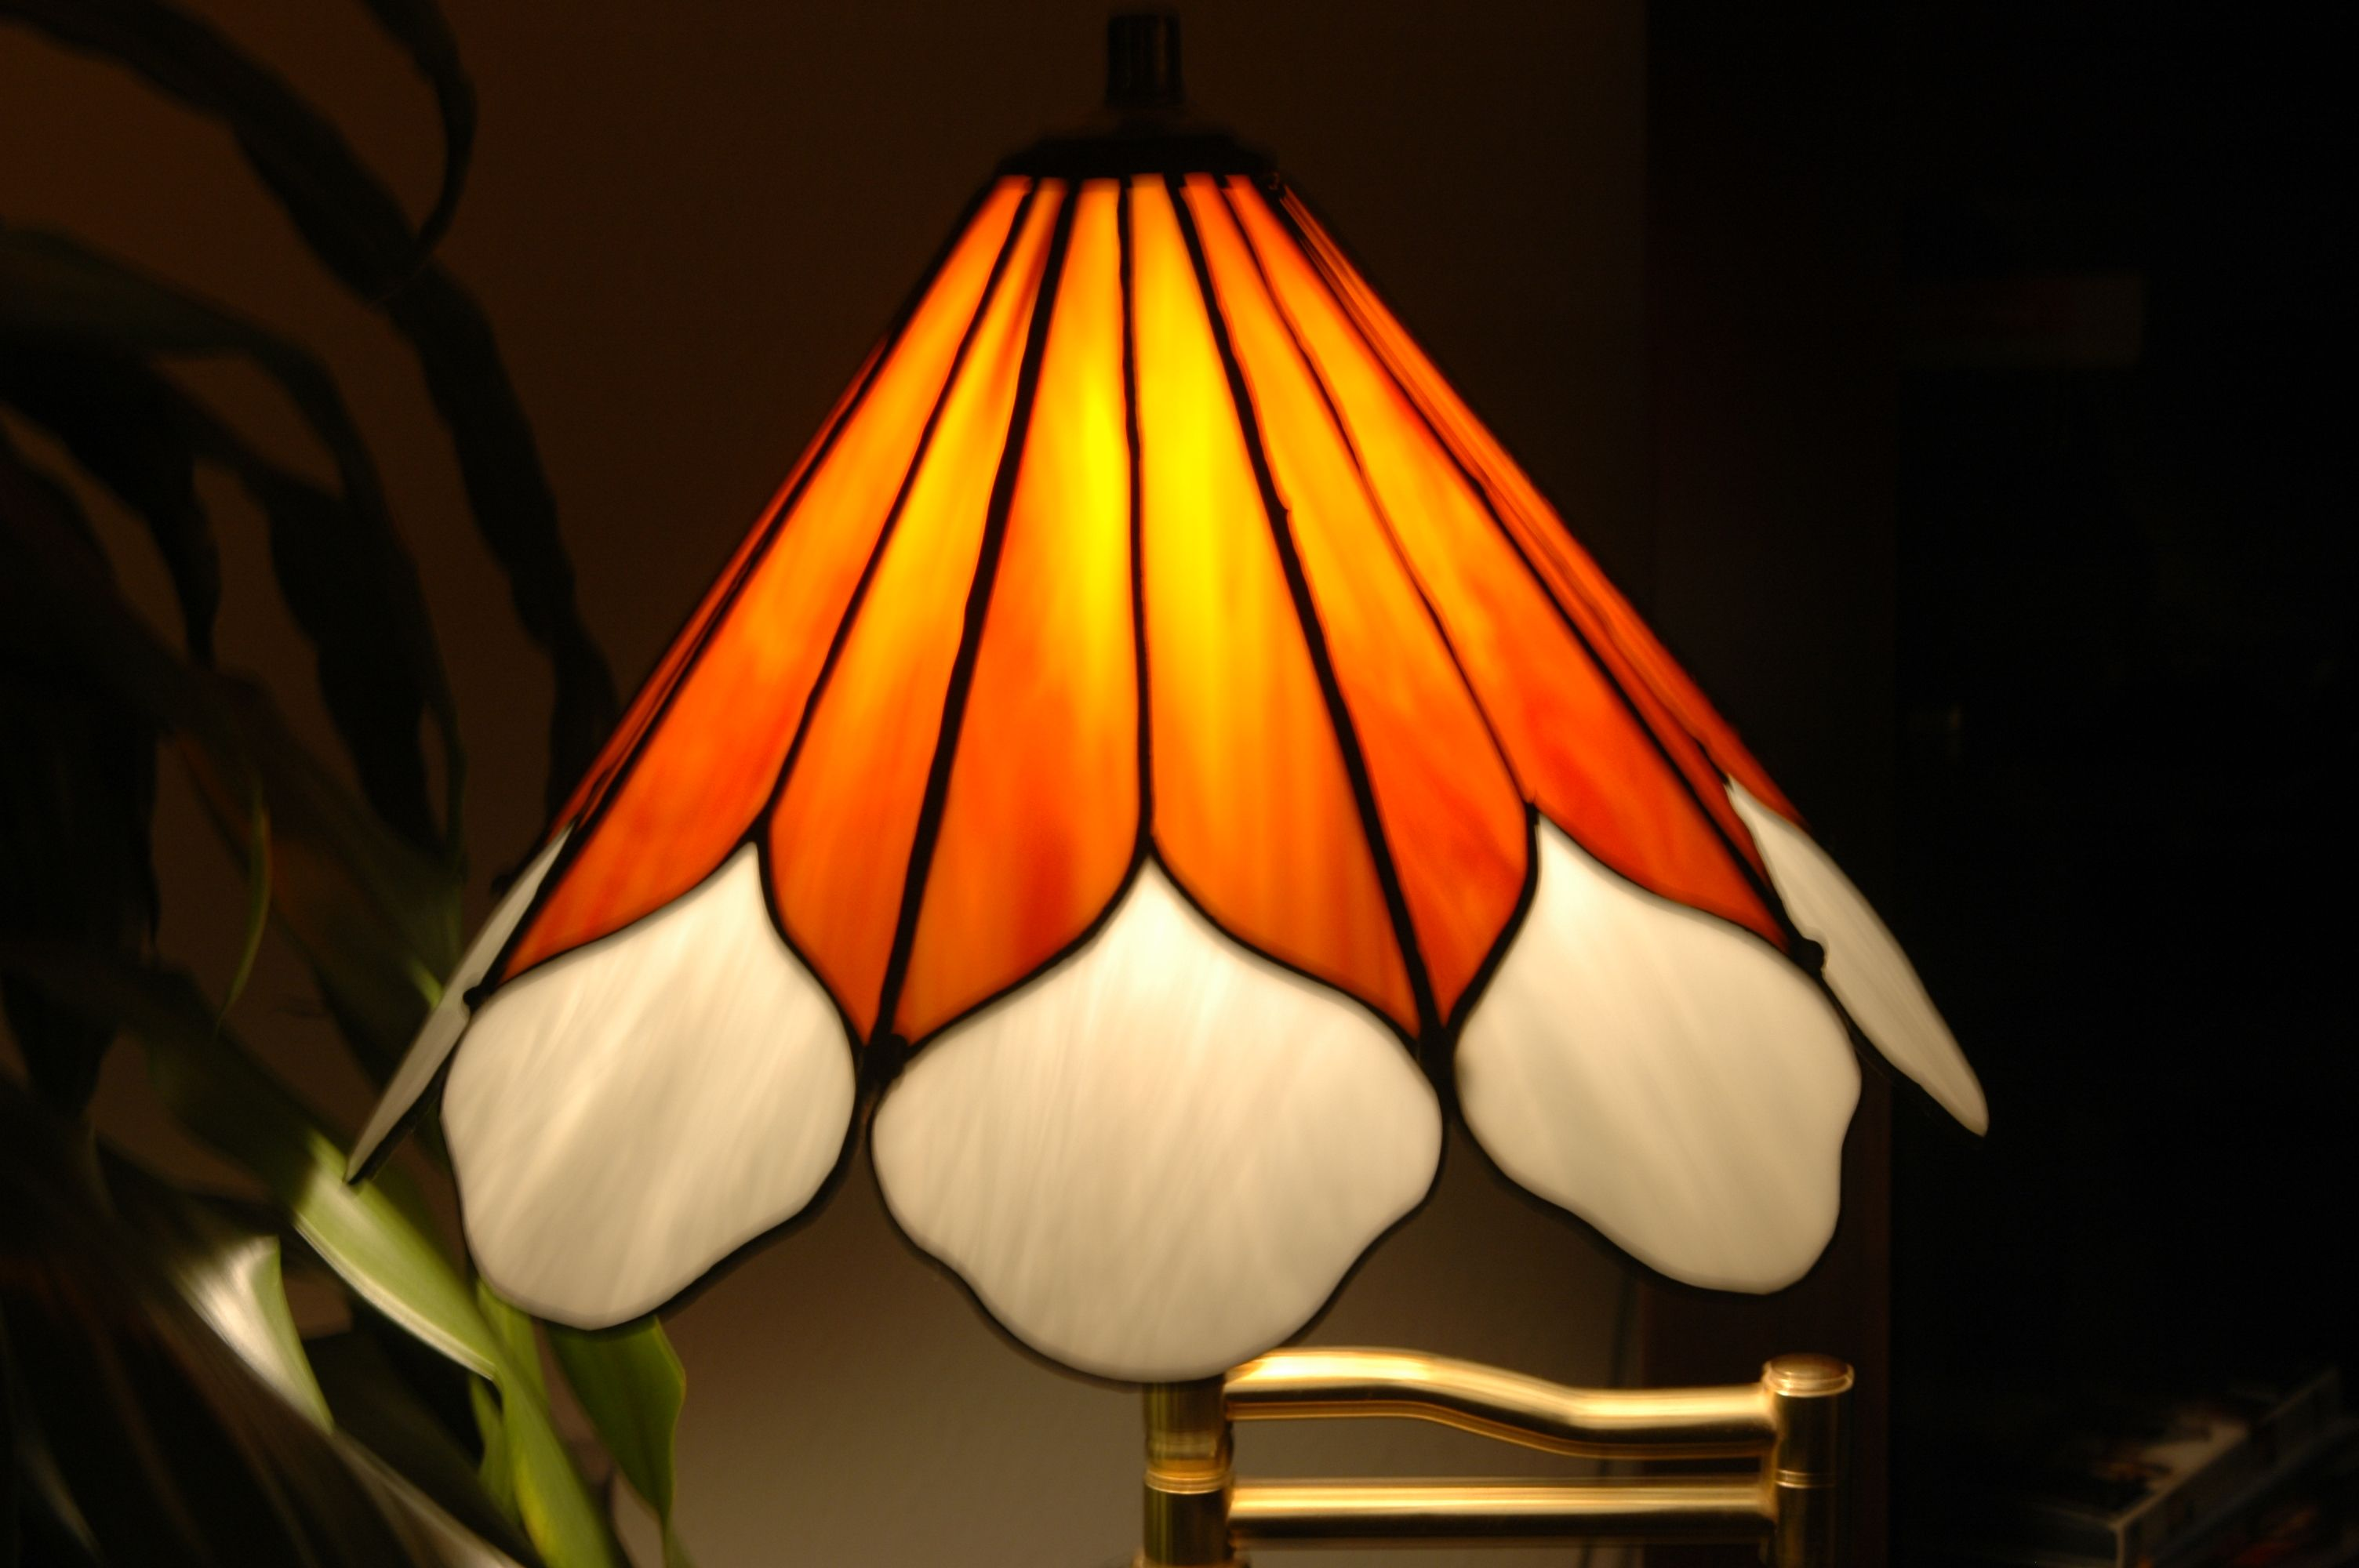 sunflower cone stained glass lamp shade stained glass 5 pintere. Black Bedroom Furniture Sets. Home Design Ideas